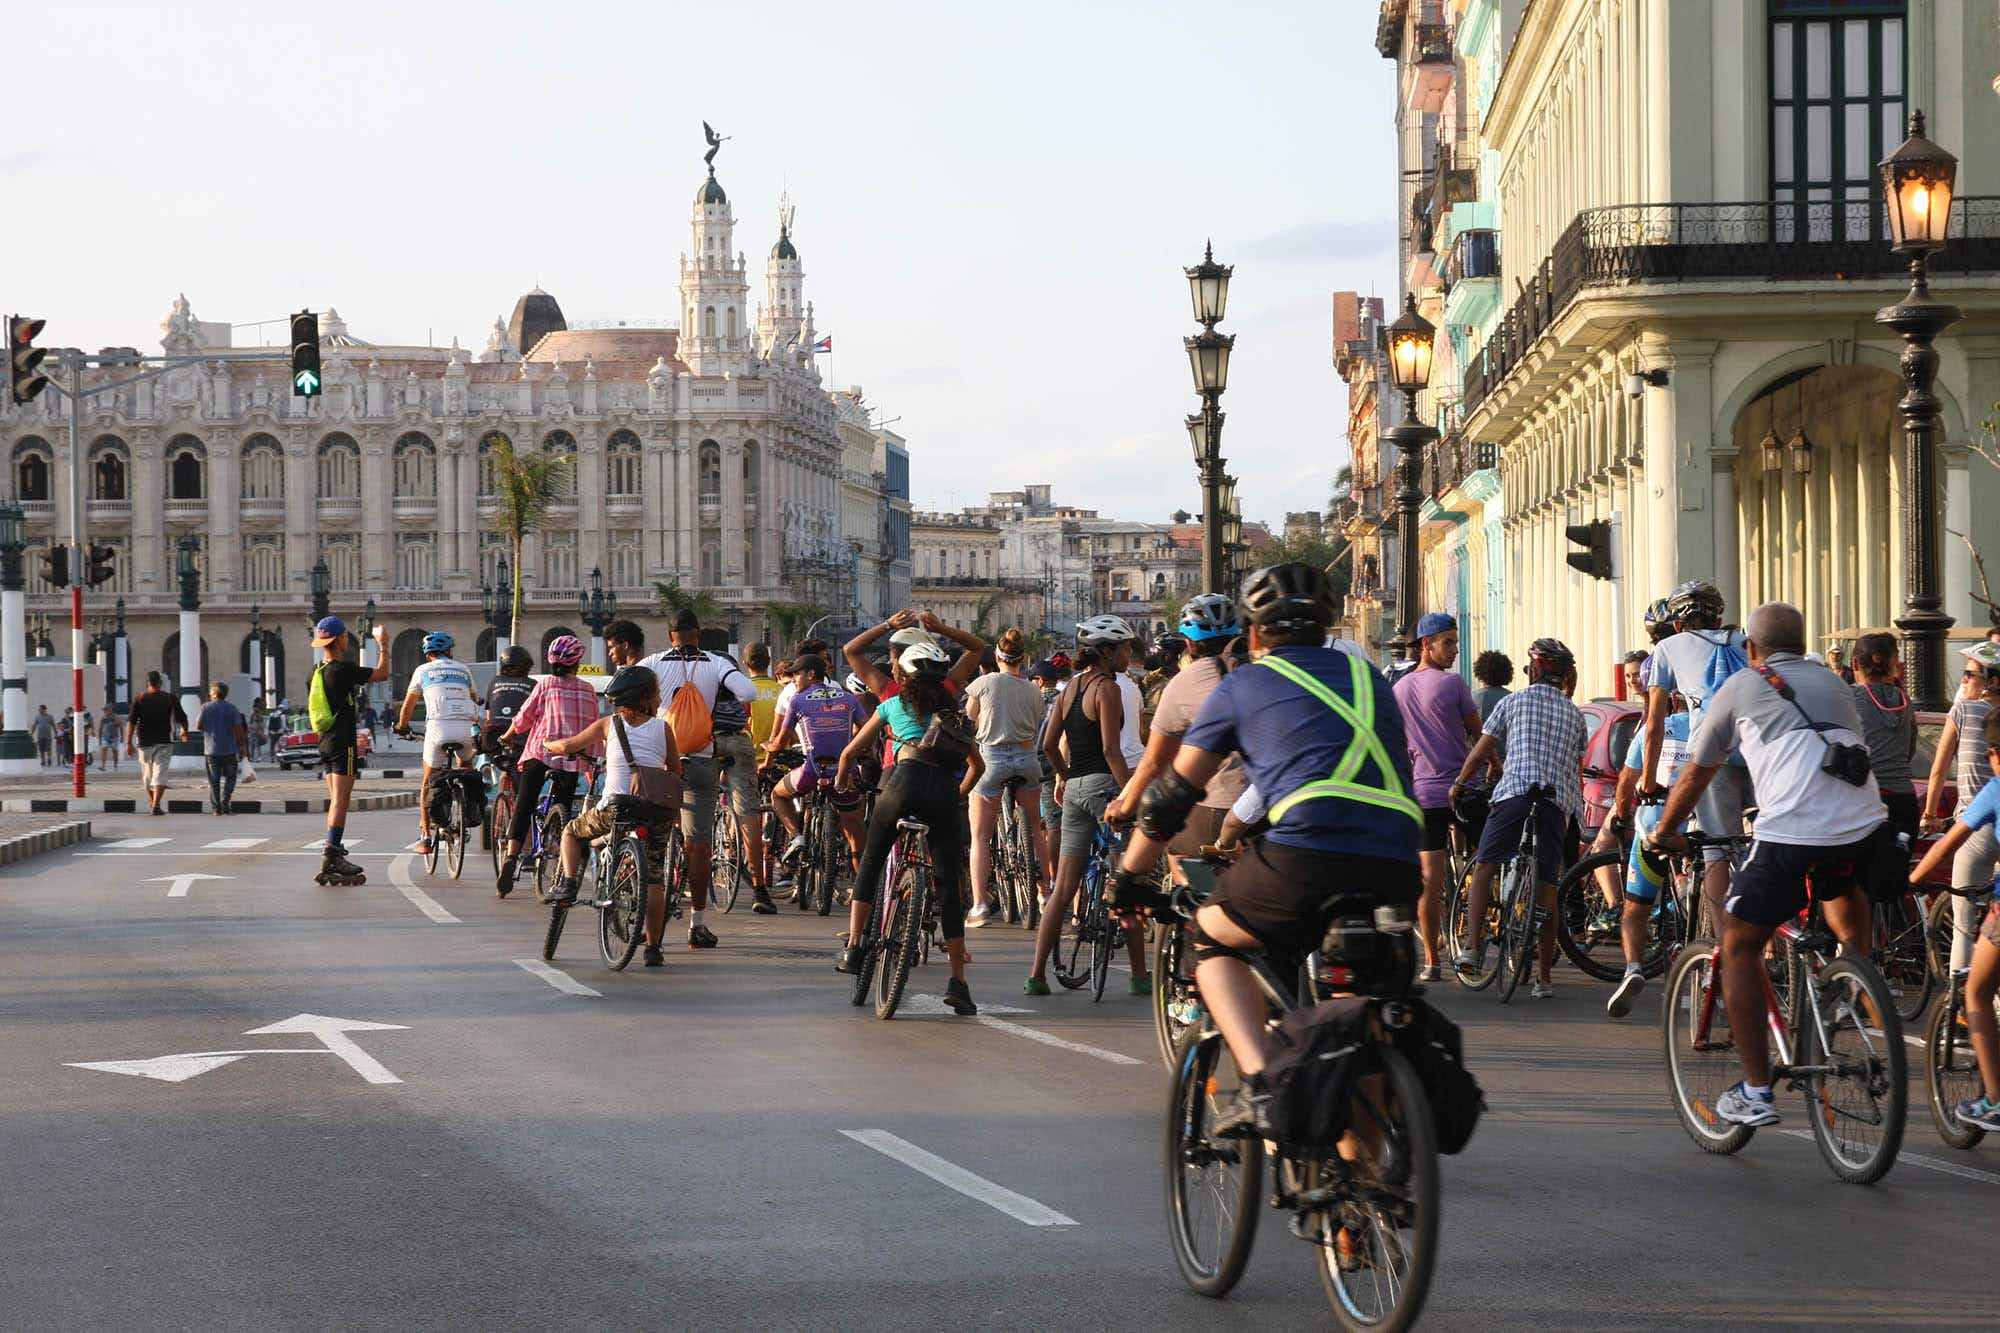 You can join a group of cyclists as they ride around Havana